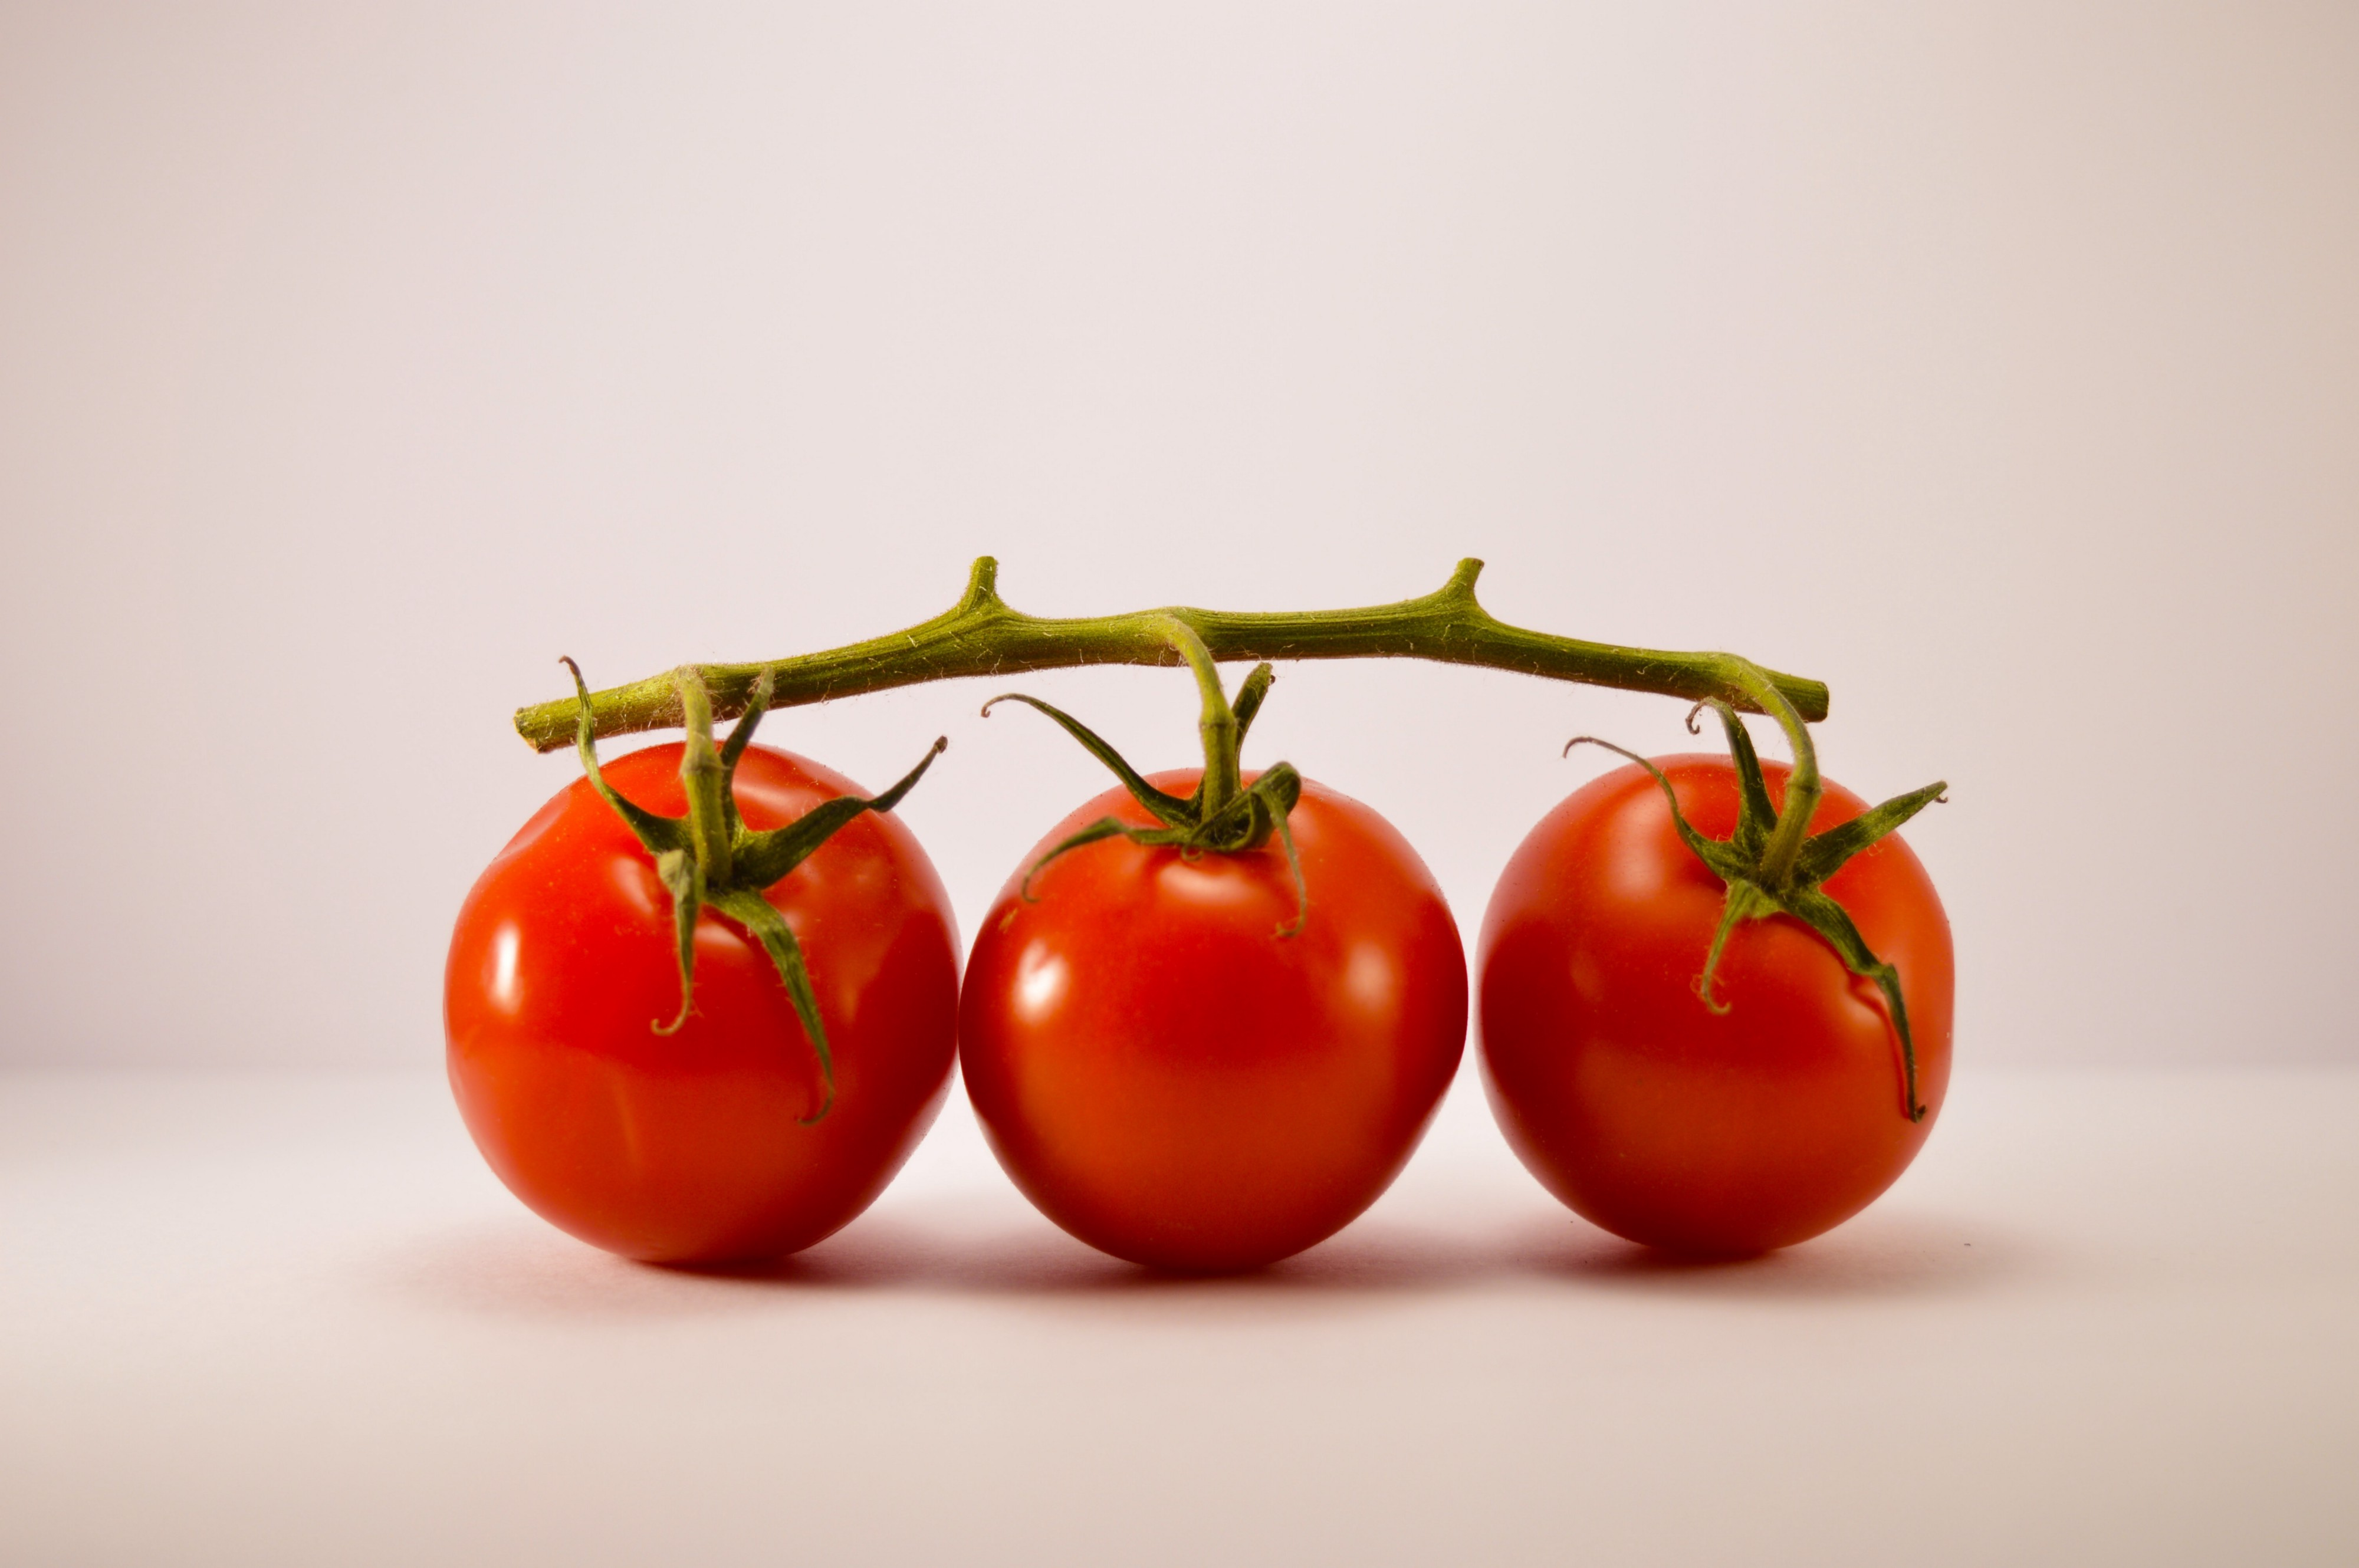 Three Tomatoes that represent the Pomodoro technique. In this article, you learn why the magic lies in the Pomodoro breaks.